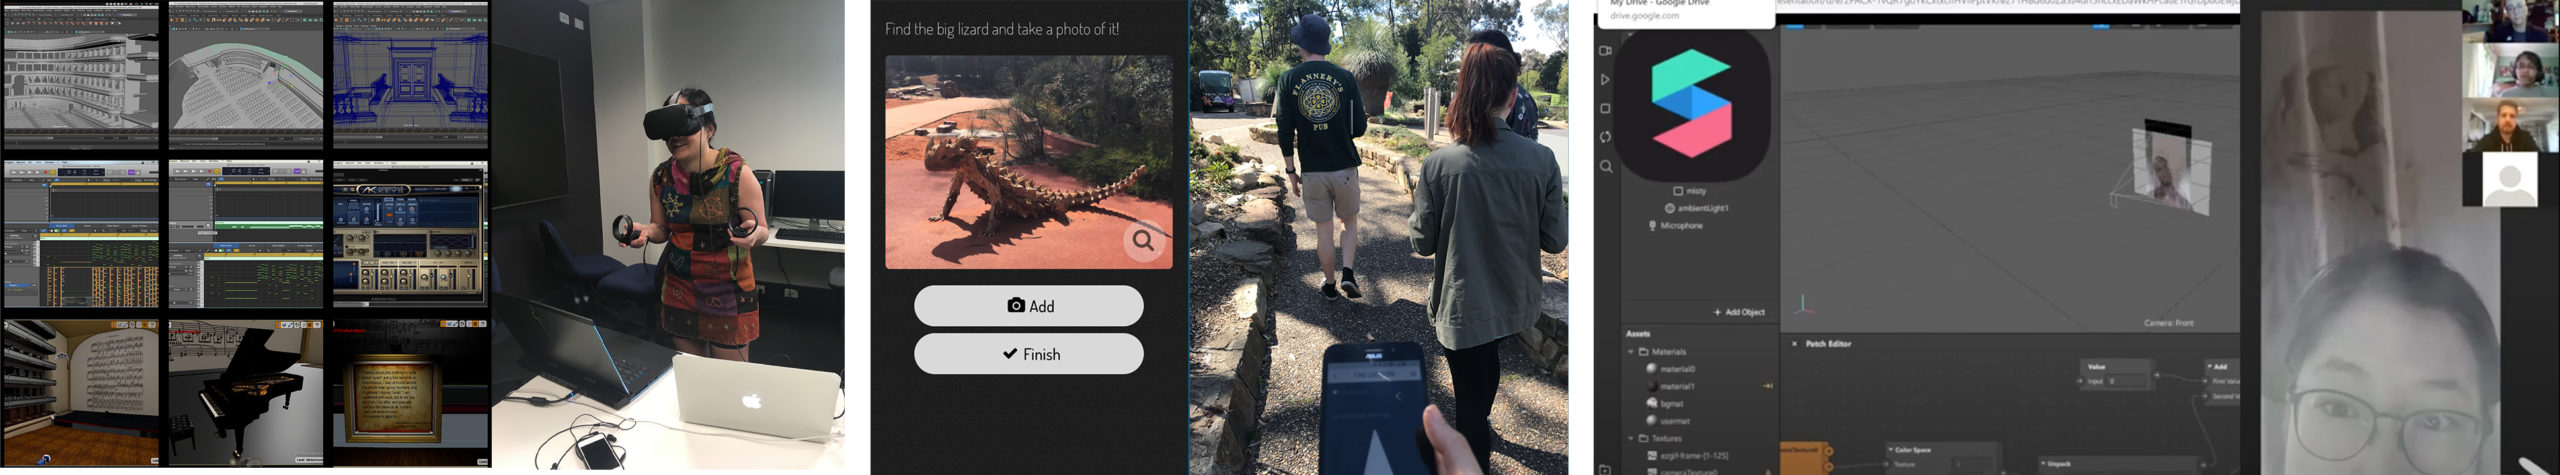 Photos and screen captures of XR projects showing student testing VR, screengrabs of a virtual concert hall, students testing an AR app in the botanical gardens and an instagram app showing selfies with ghosts inserted into them